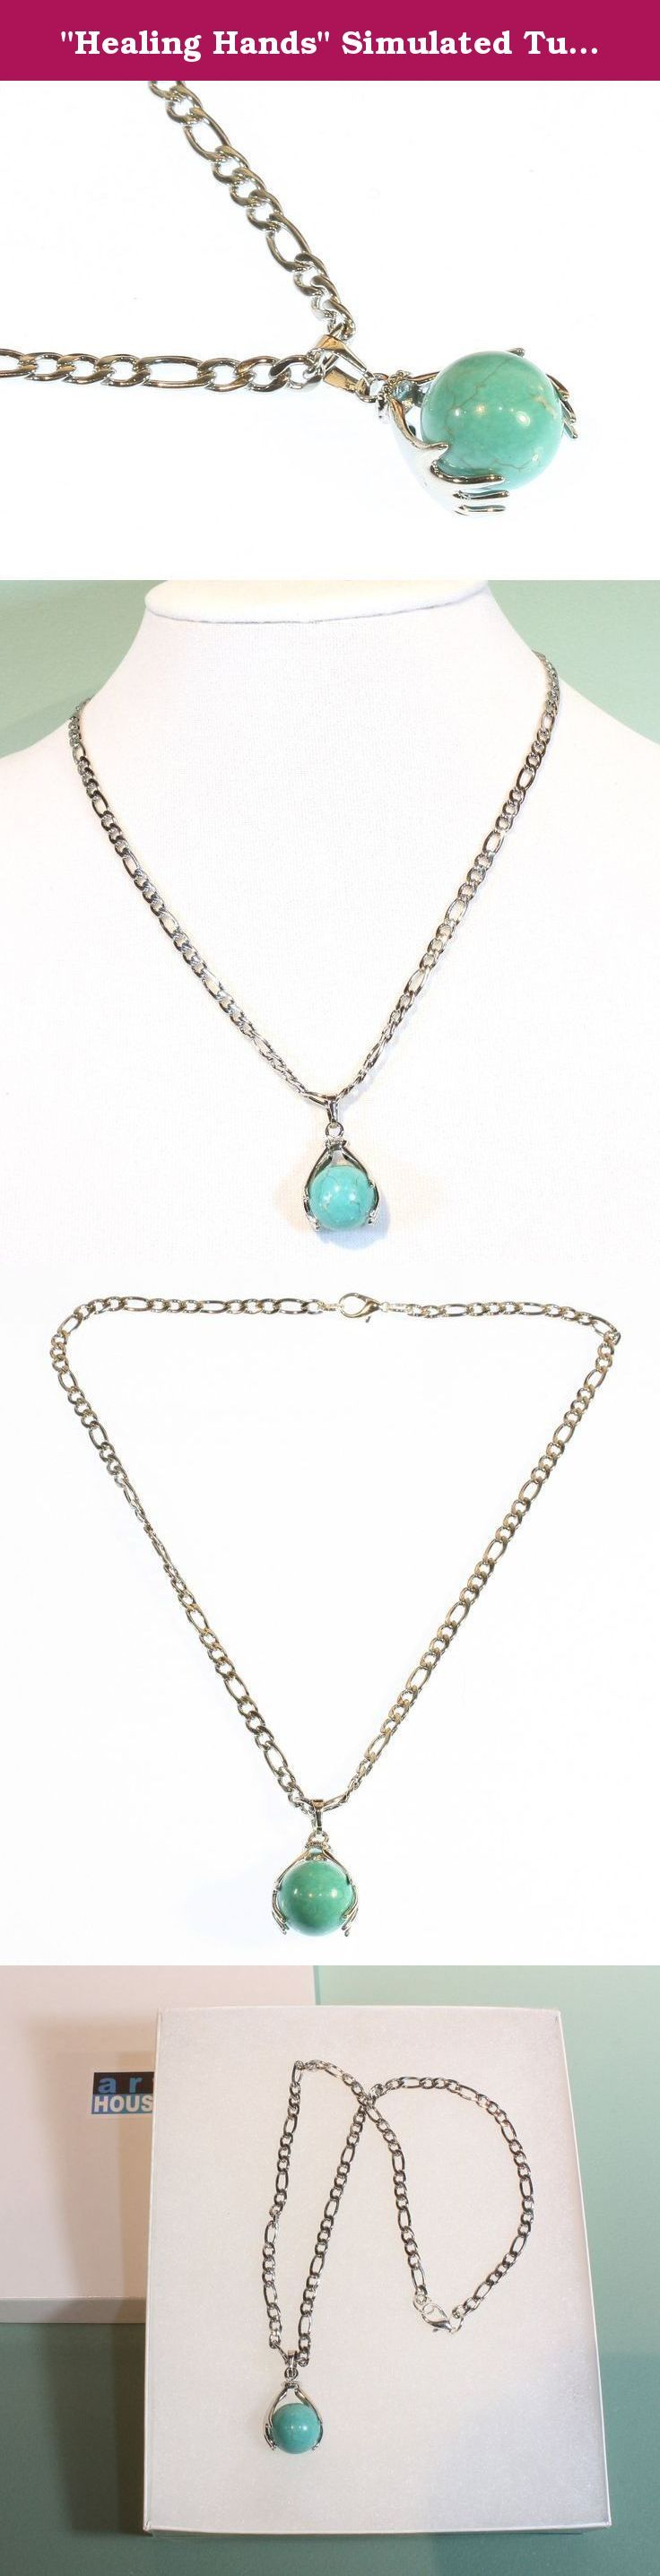 """""""Healing Hands"""" Simulated Turquoise Pendant on Stainless Steel Chain, 18 Inches. Style ARThouse is a beaded jewelry business located in Sandy Spring, Maryland, USA. It is a family-owned business operated by myself and my husband, founded in 2013. Our goal is to create and sell moderately priced casual jewelry that would be worn for fun and enjoyment. ARThouse style is usually simple and direct, with the individual beads and stones given center stage so that their own natural beauty can…"""